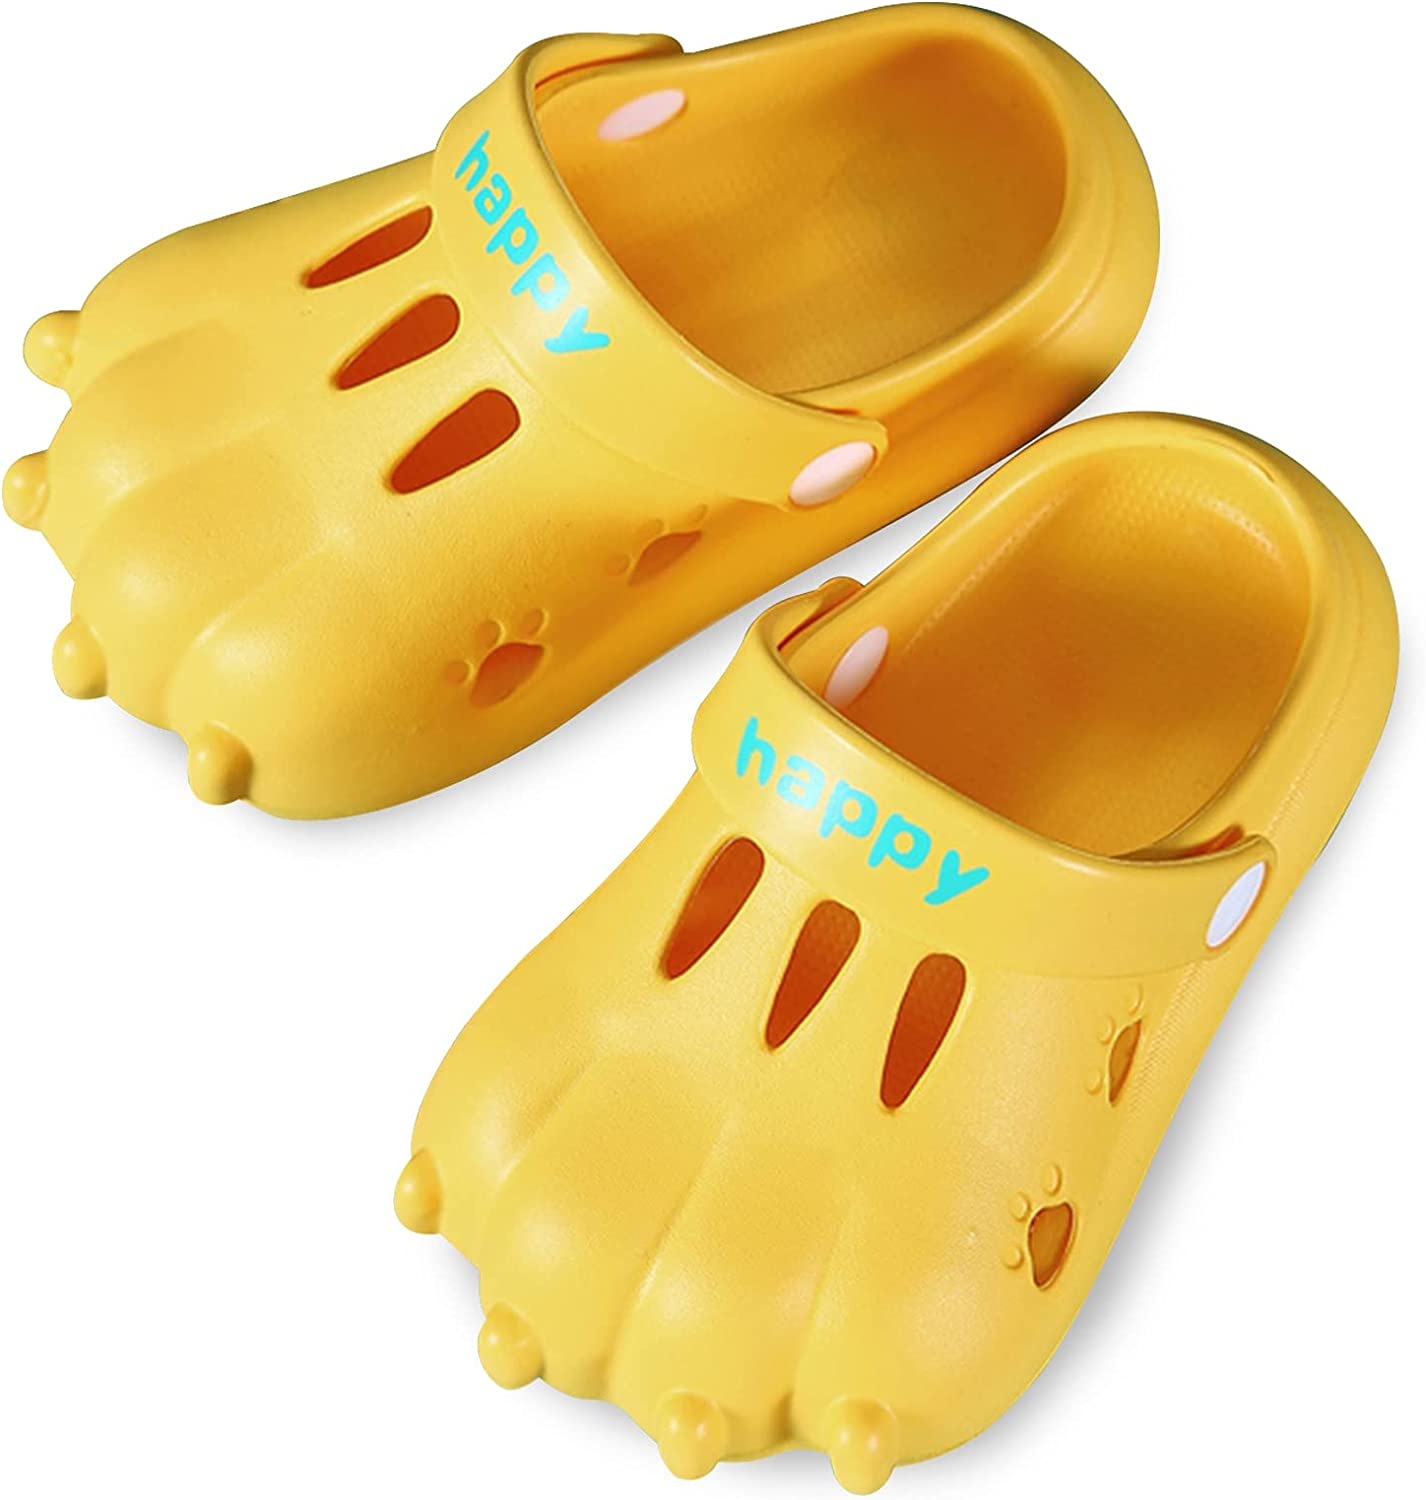 Boys Sandals Closed Toe Toddler Sandals for Girls Two Straps Kids Sandals Non Slip Boys Water Sandals Summer Shoes